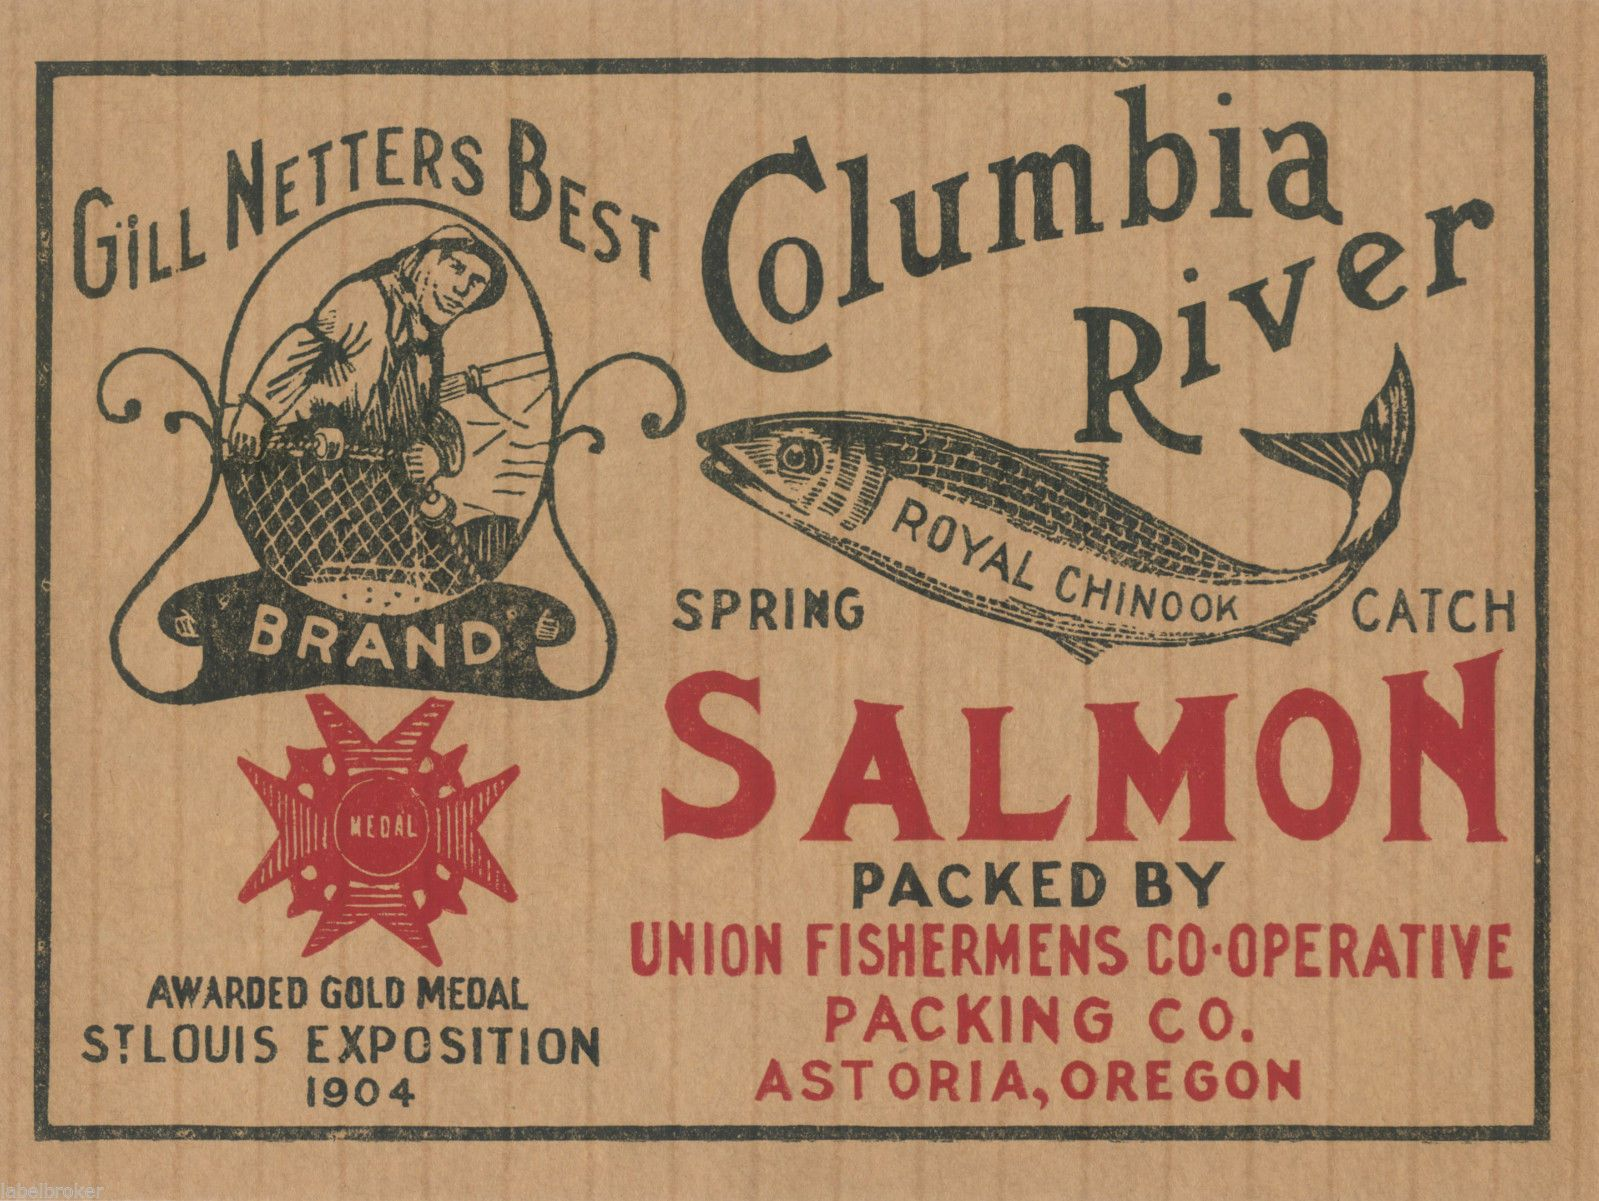 heinz label template - tin can label vintage salmon case astoria oregon gill